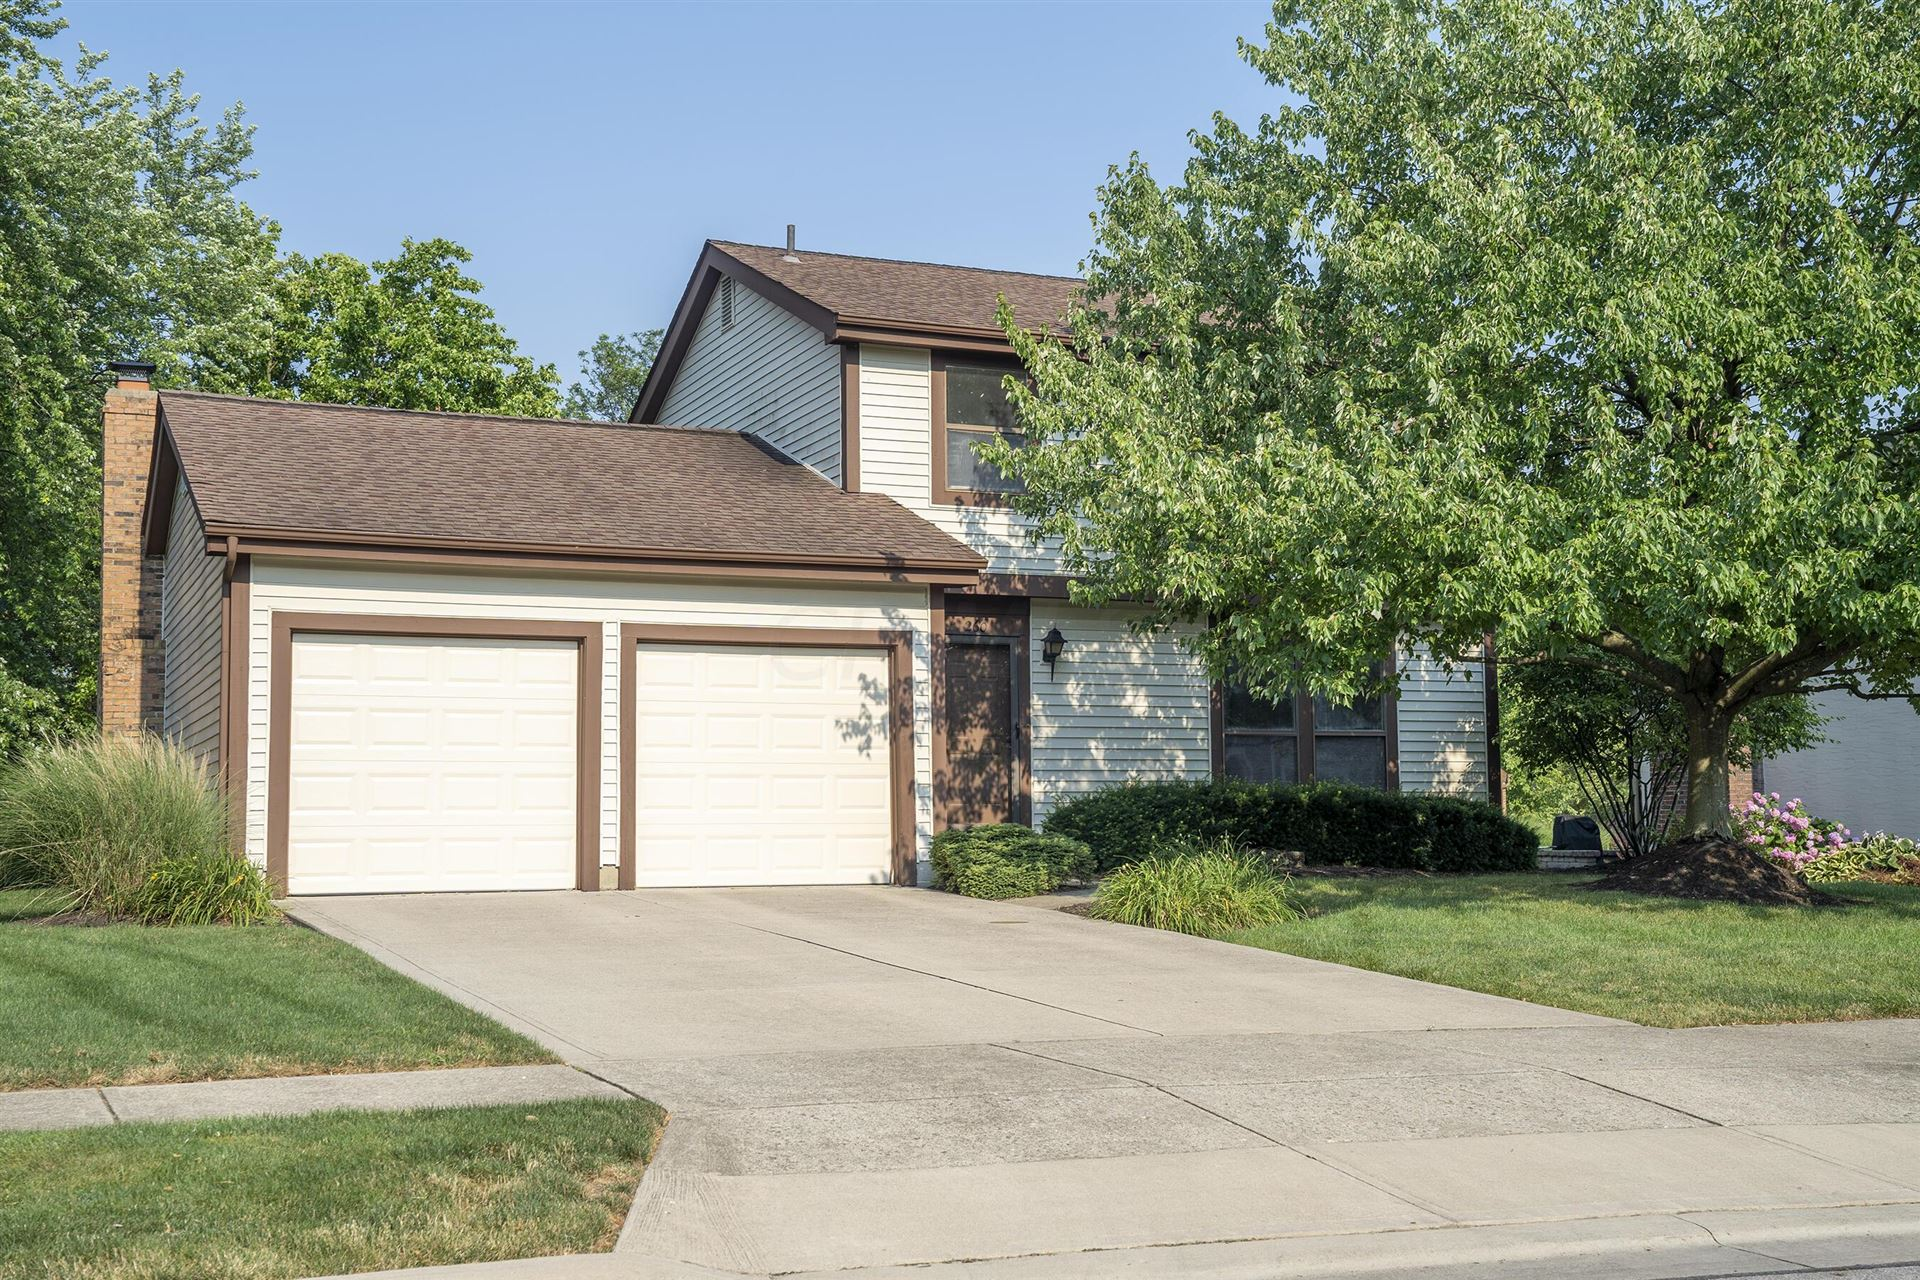 Photo of 260 Baker Lake Drive, Westerville, OH 43081 (MLS # 221029188)